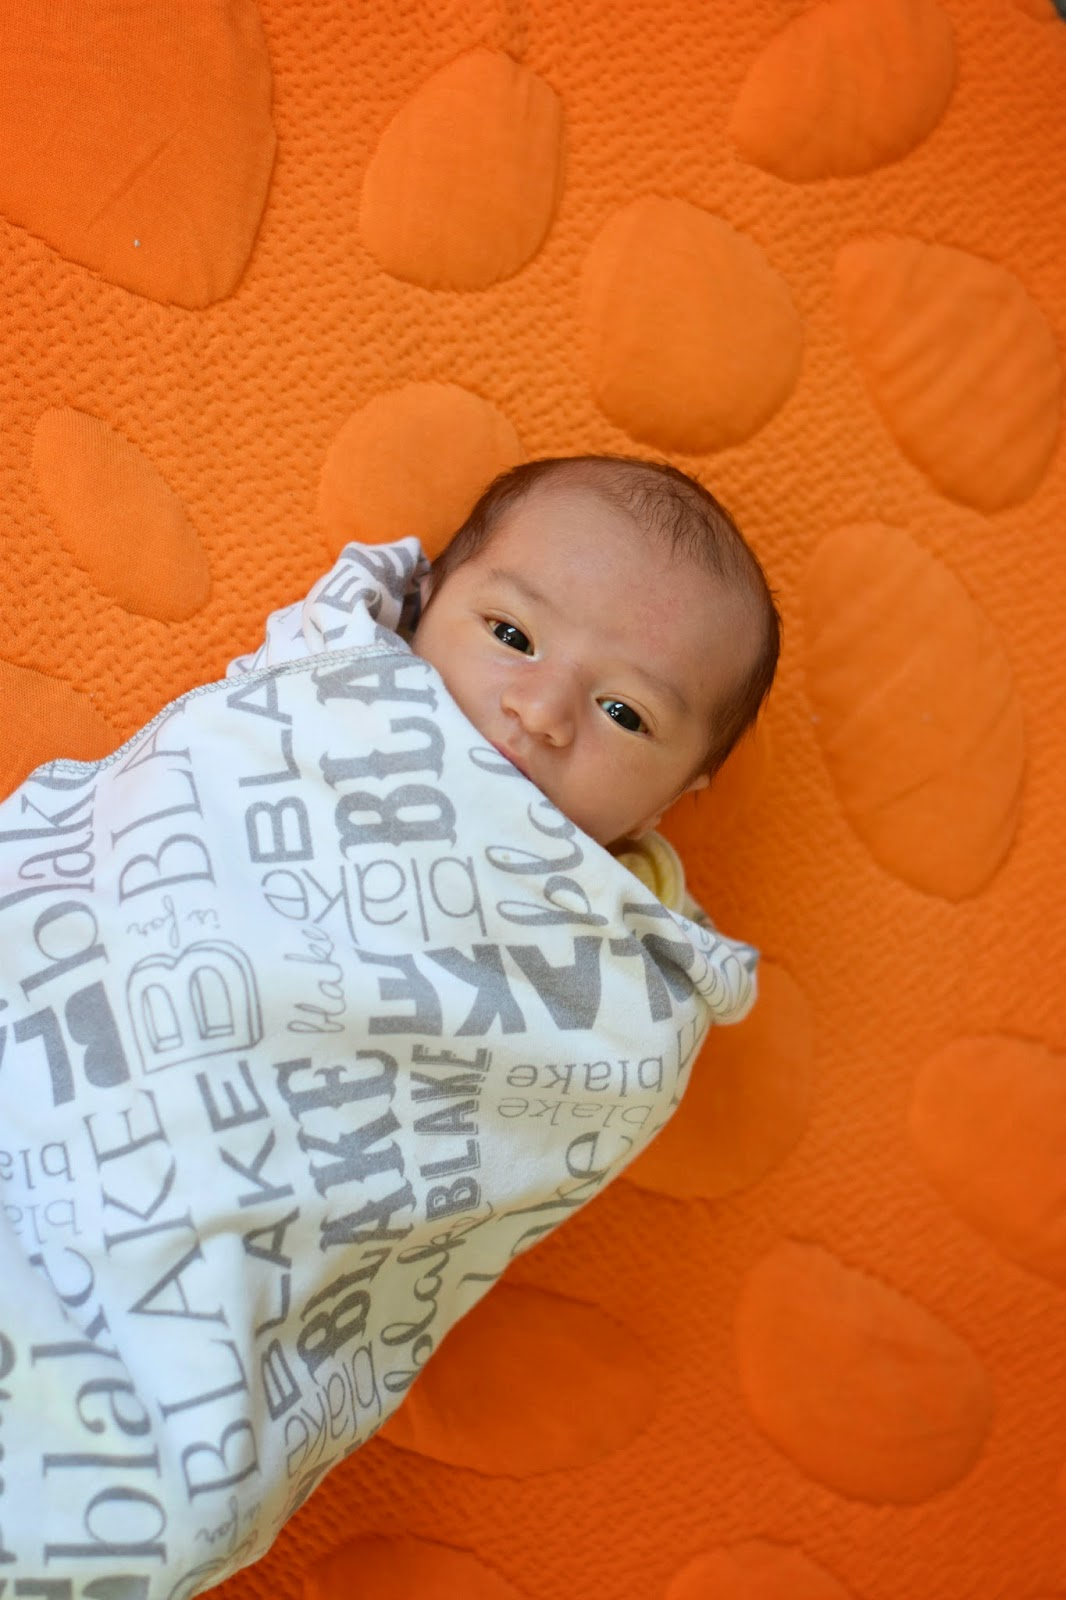 Mommy Testers, Personalized swaddle blanket, custom swaddle blanket, Modern personalized baby blanket, Atkinson Drive Gifts,